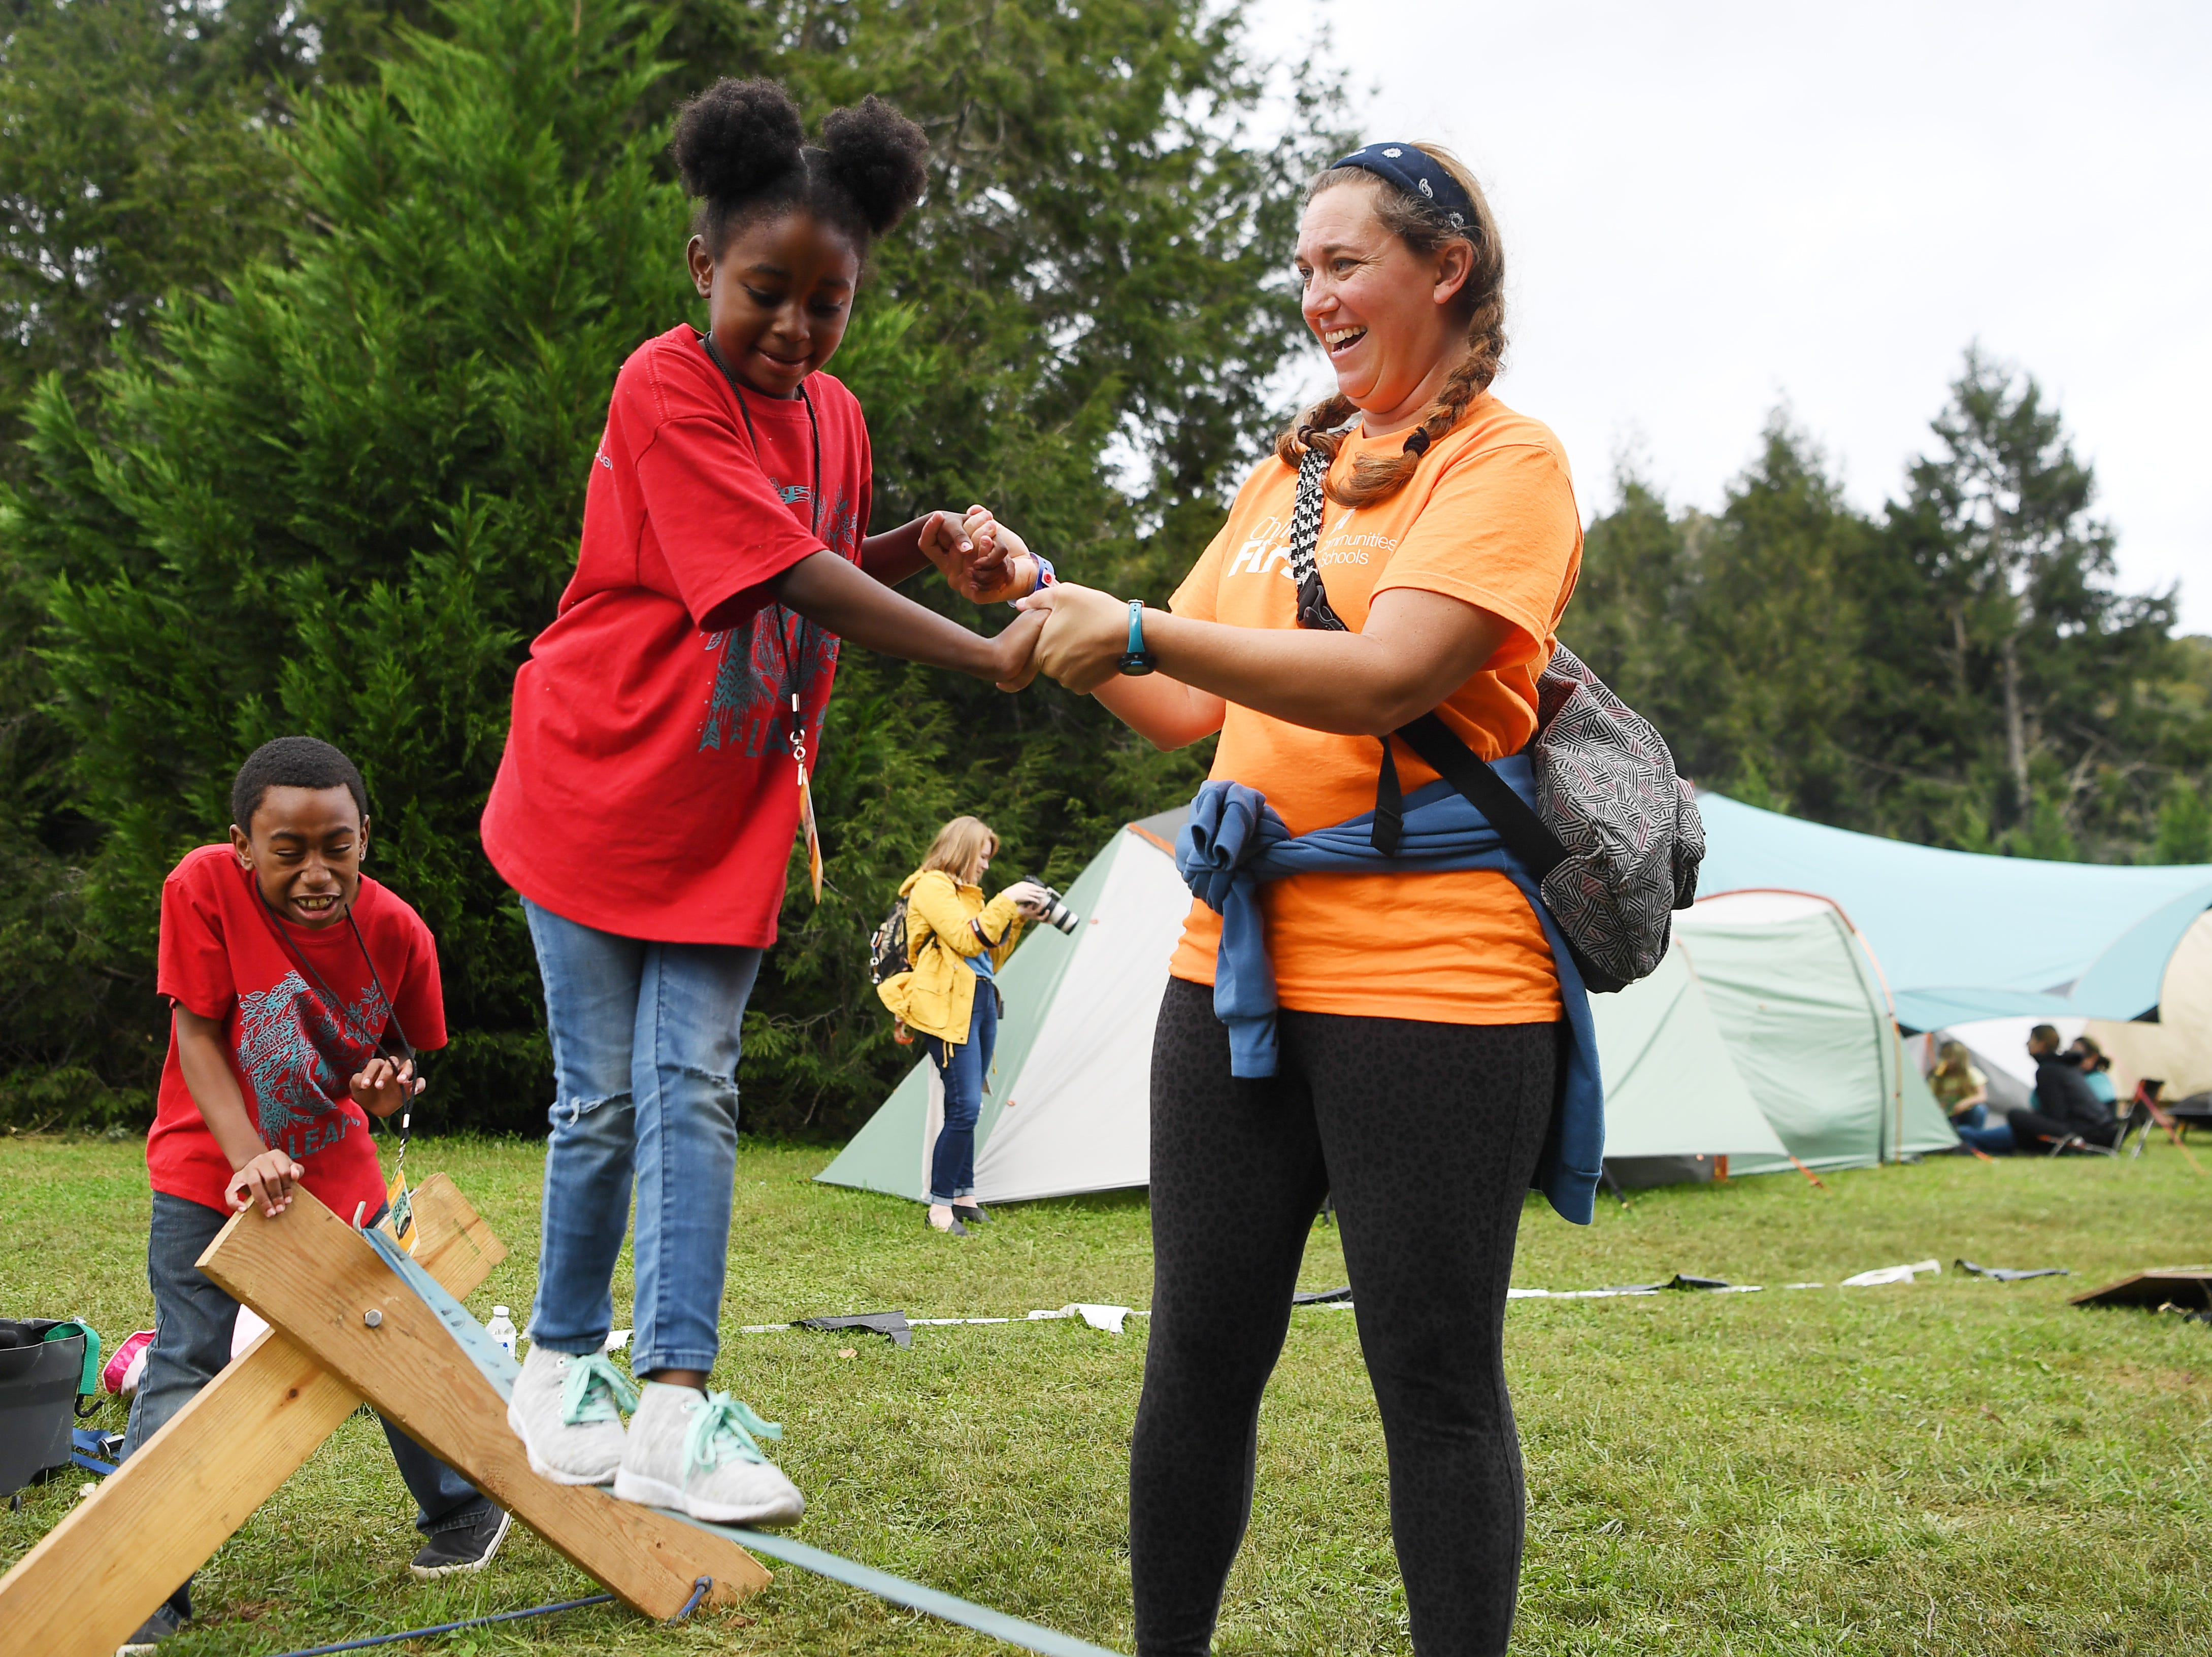 Tiraji Wright, 6, walks across a slack line with help from Whitney Campassi at the 47th Lake Eden Arts Festival in Black Mountain Oct. 20, 2018.